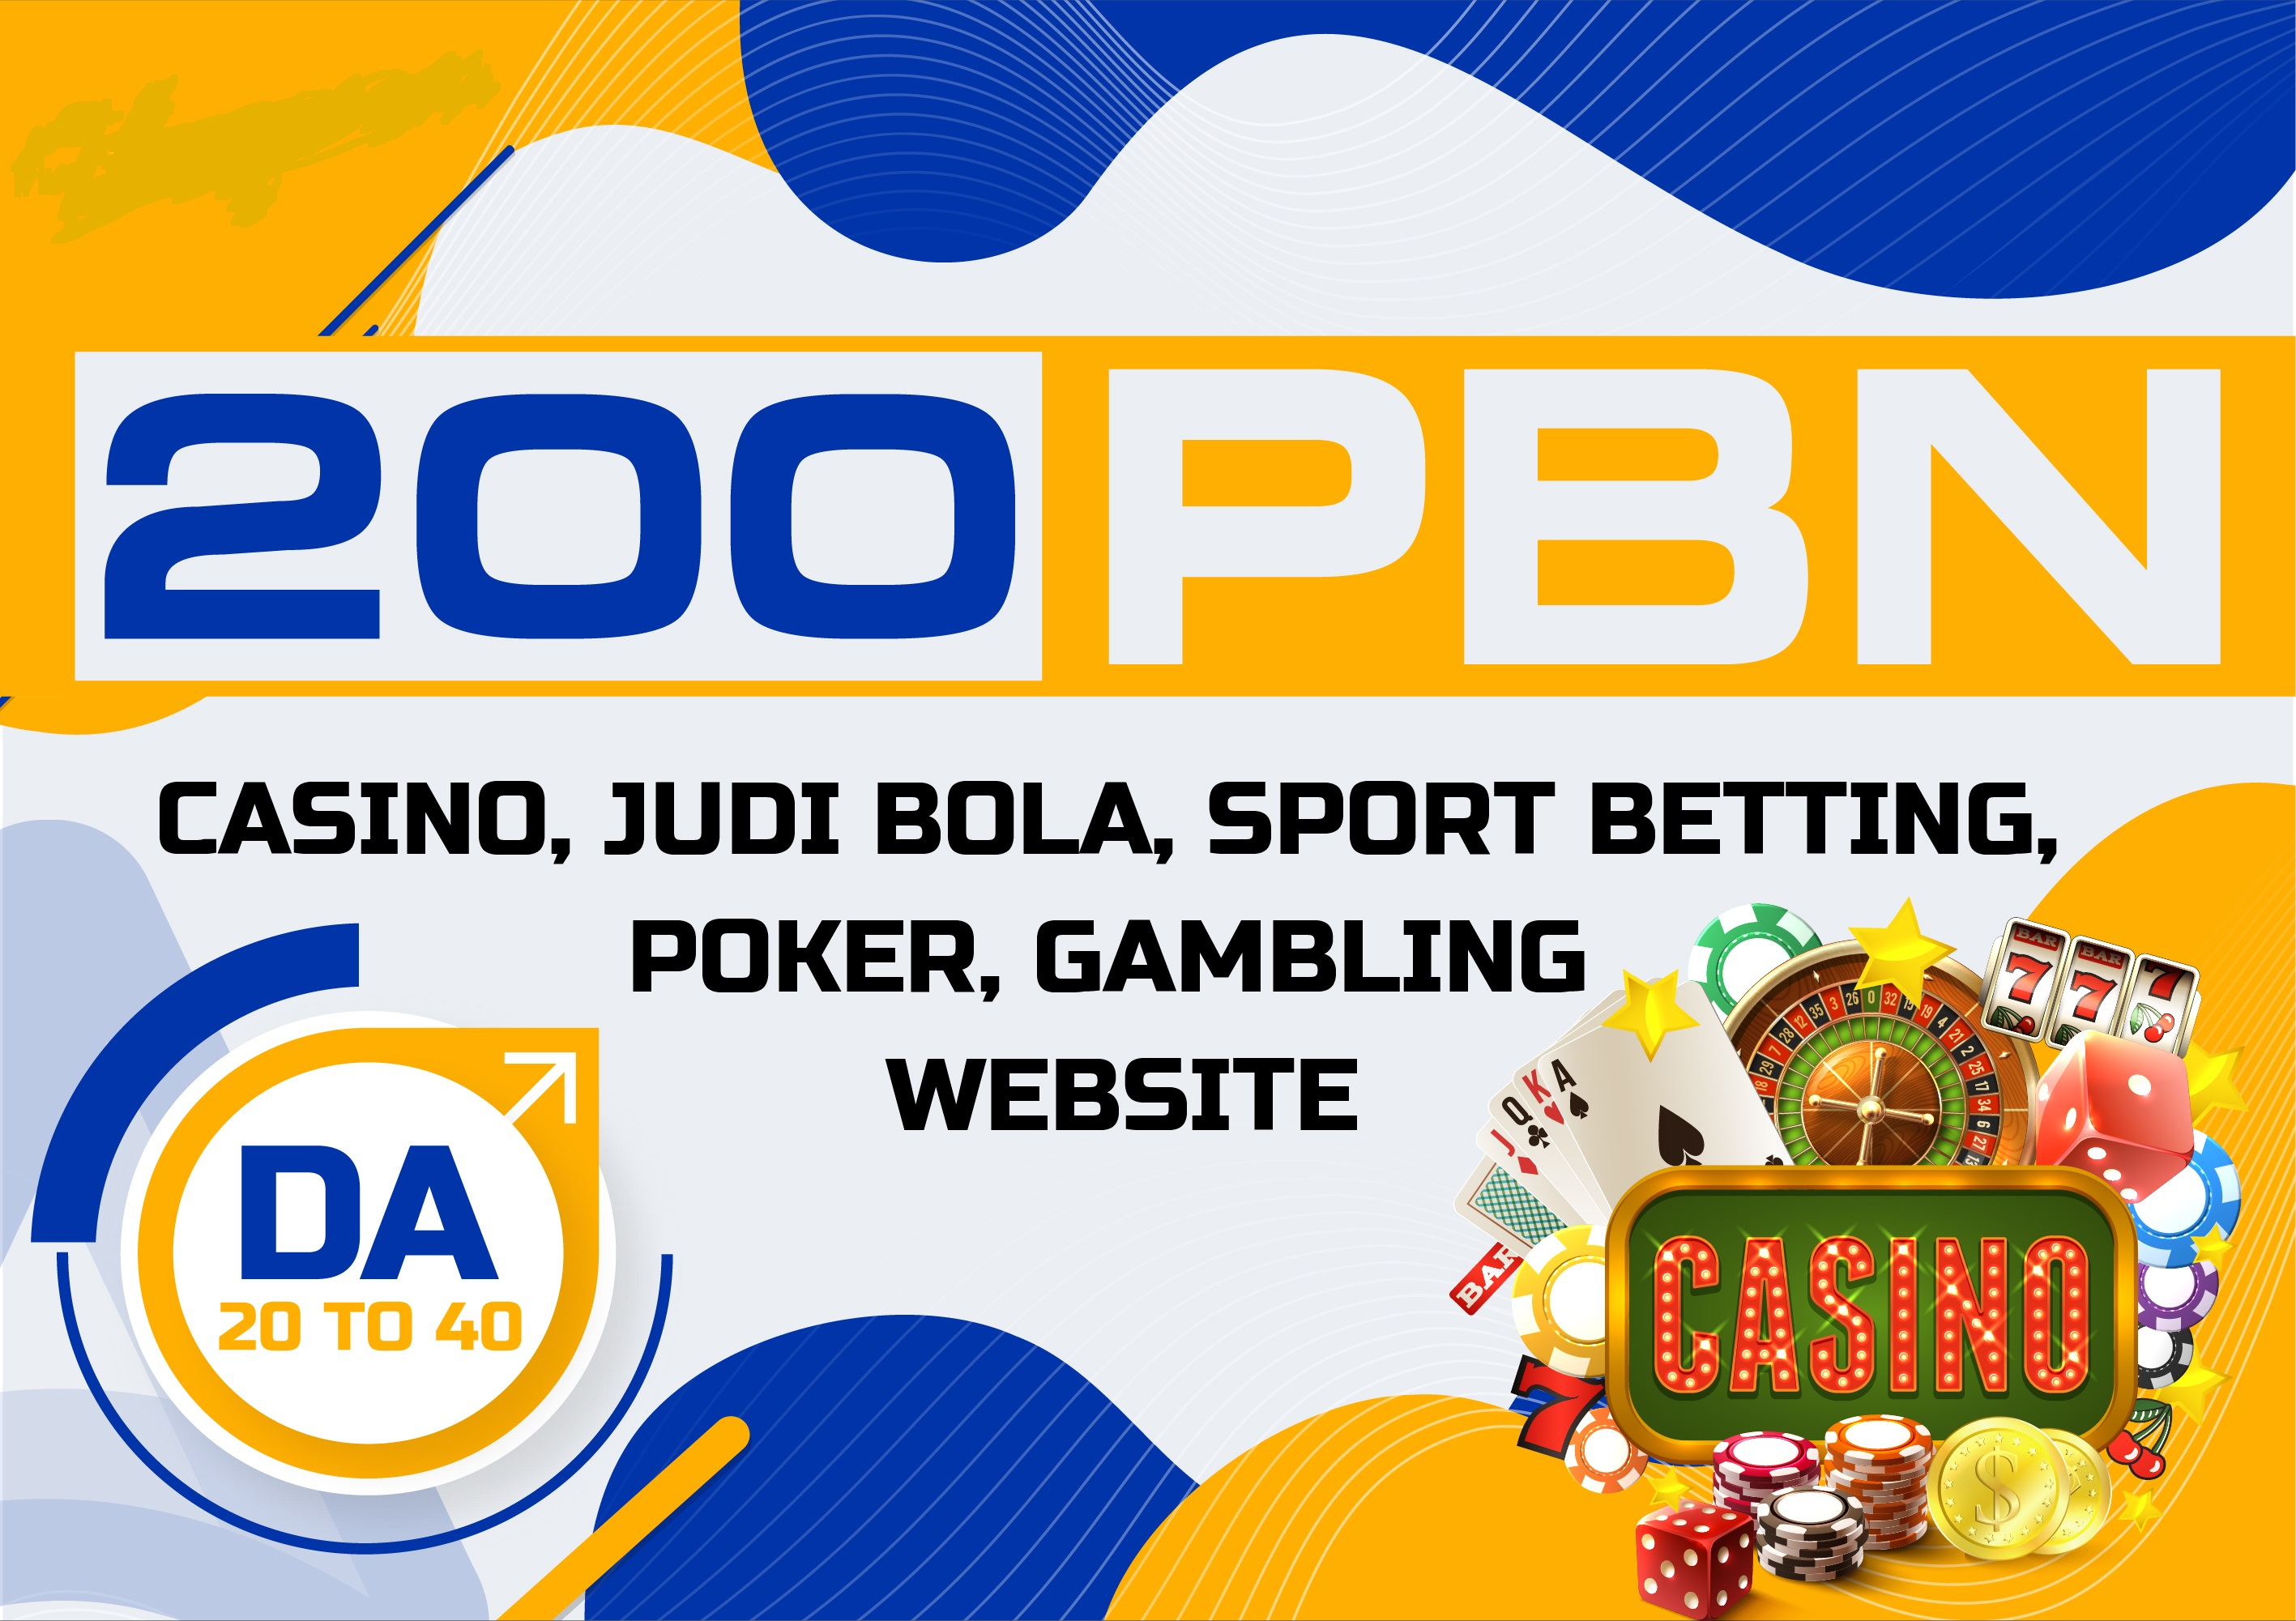 200 PBN Casino Poker Gambling UFABET Related High DA 20+40 PBN Backlinks To Boost Your Site Page 1